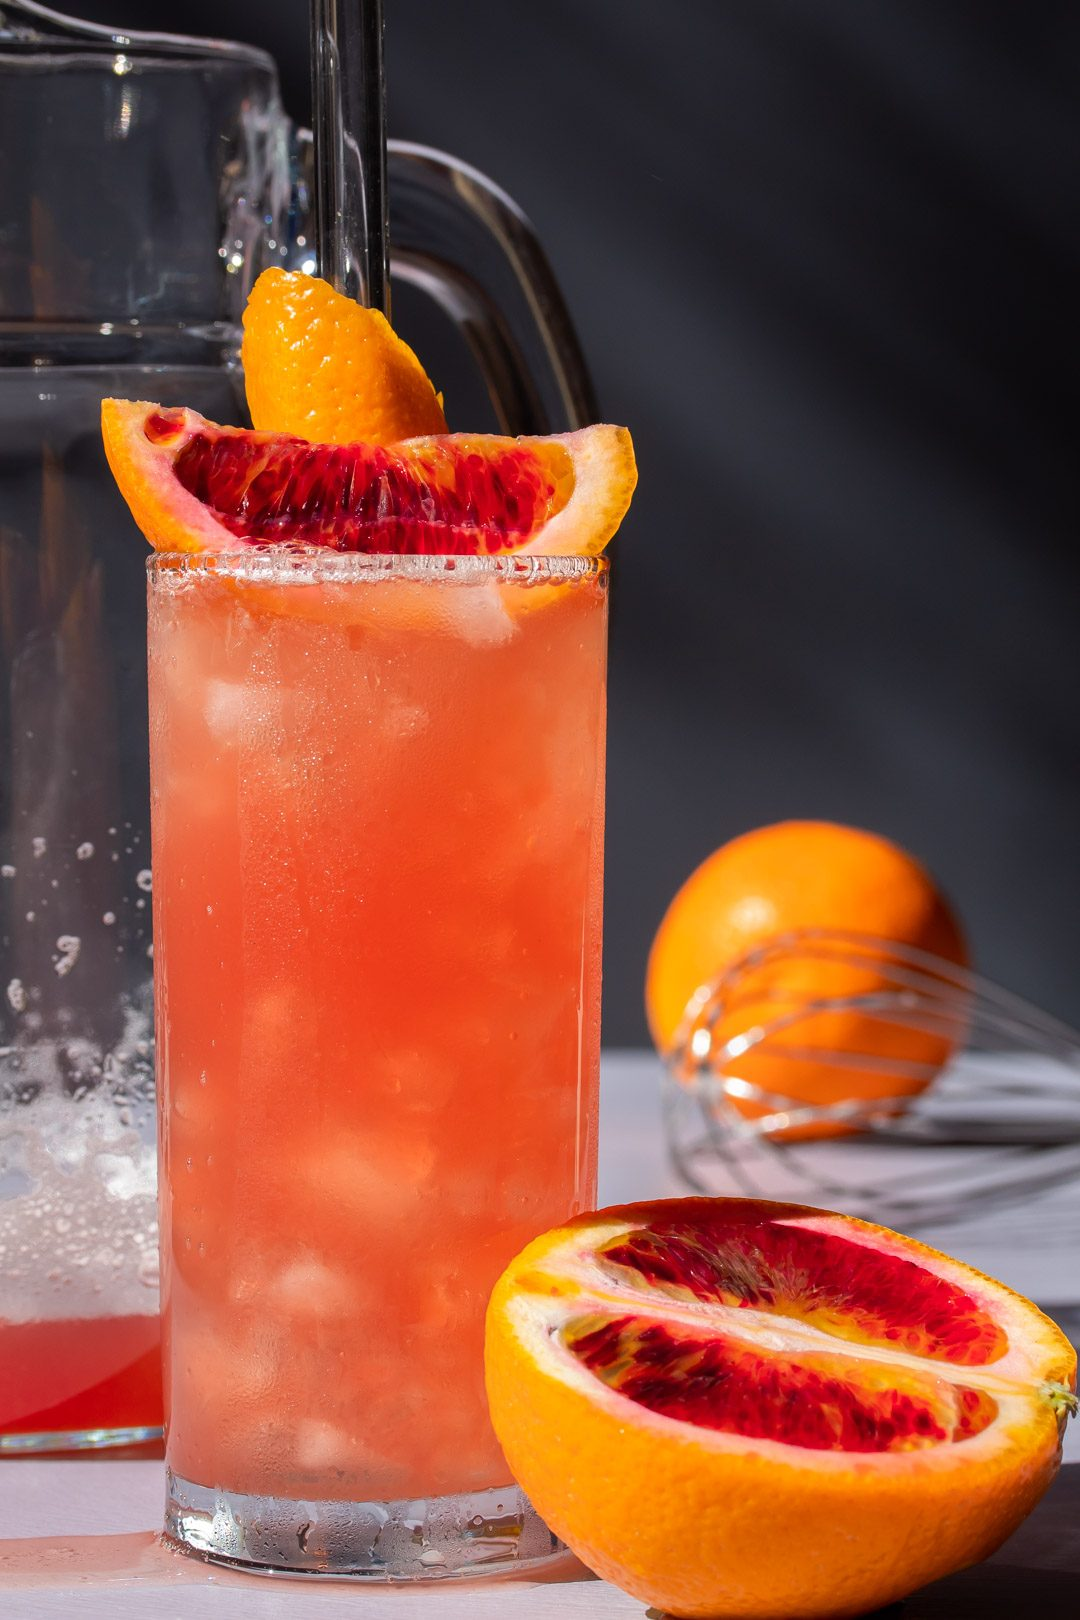 improved blood orangeade with jug, whisk and orange in background, cut blood orange in foreground